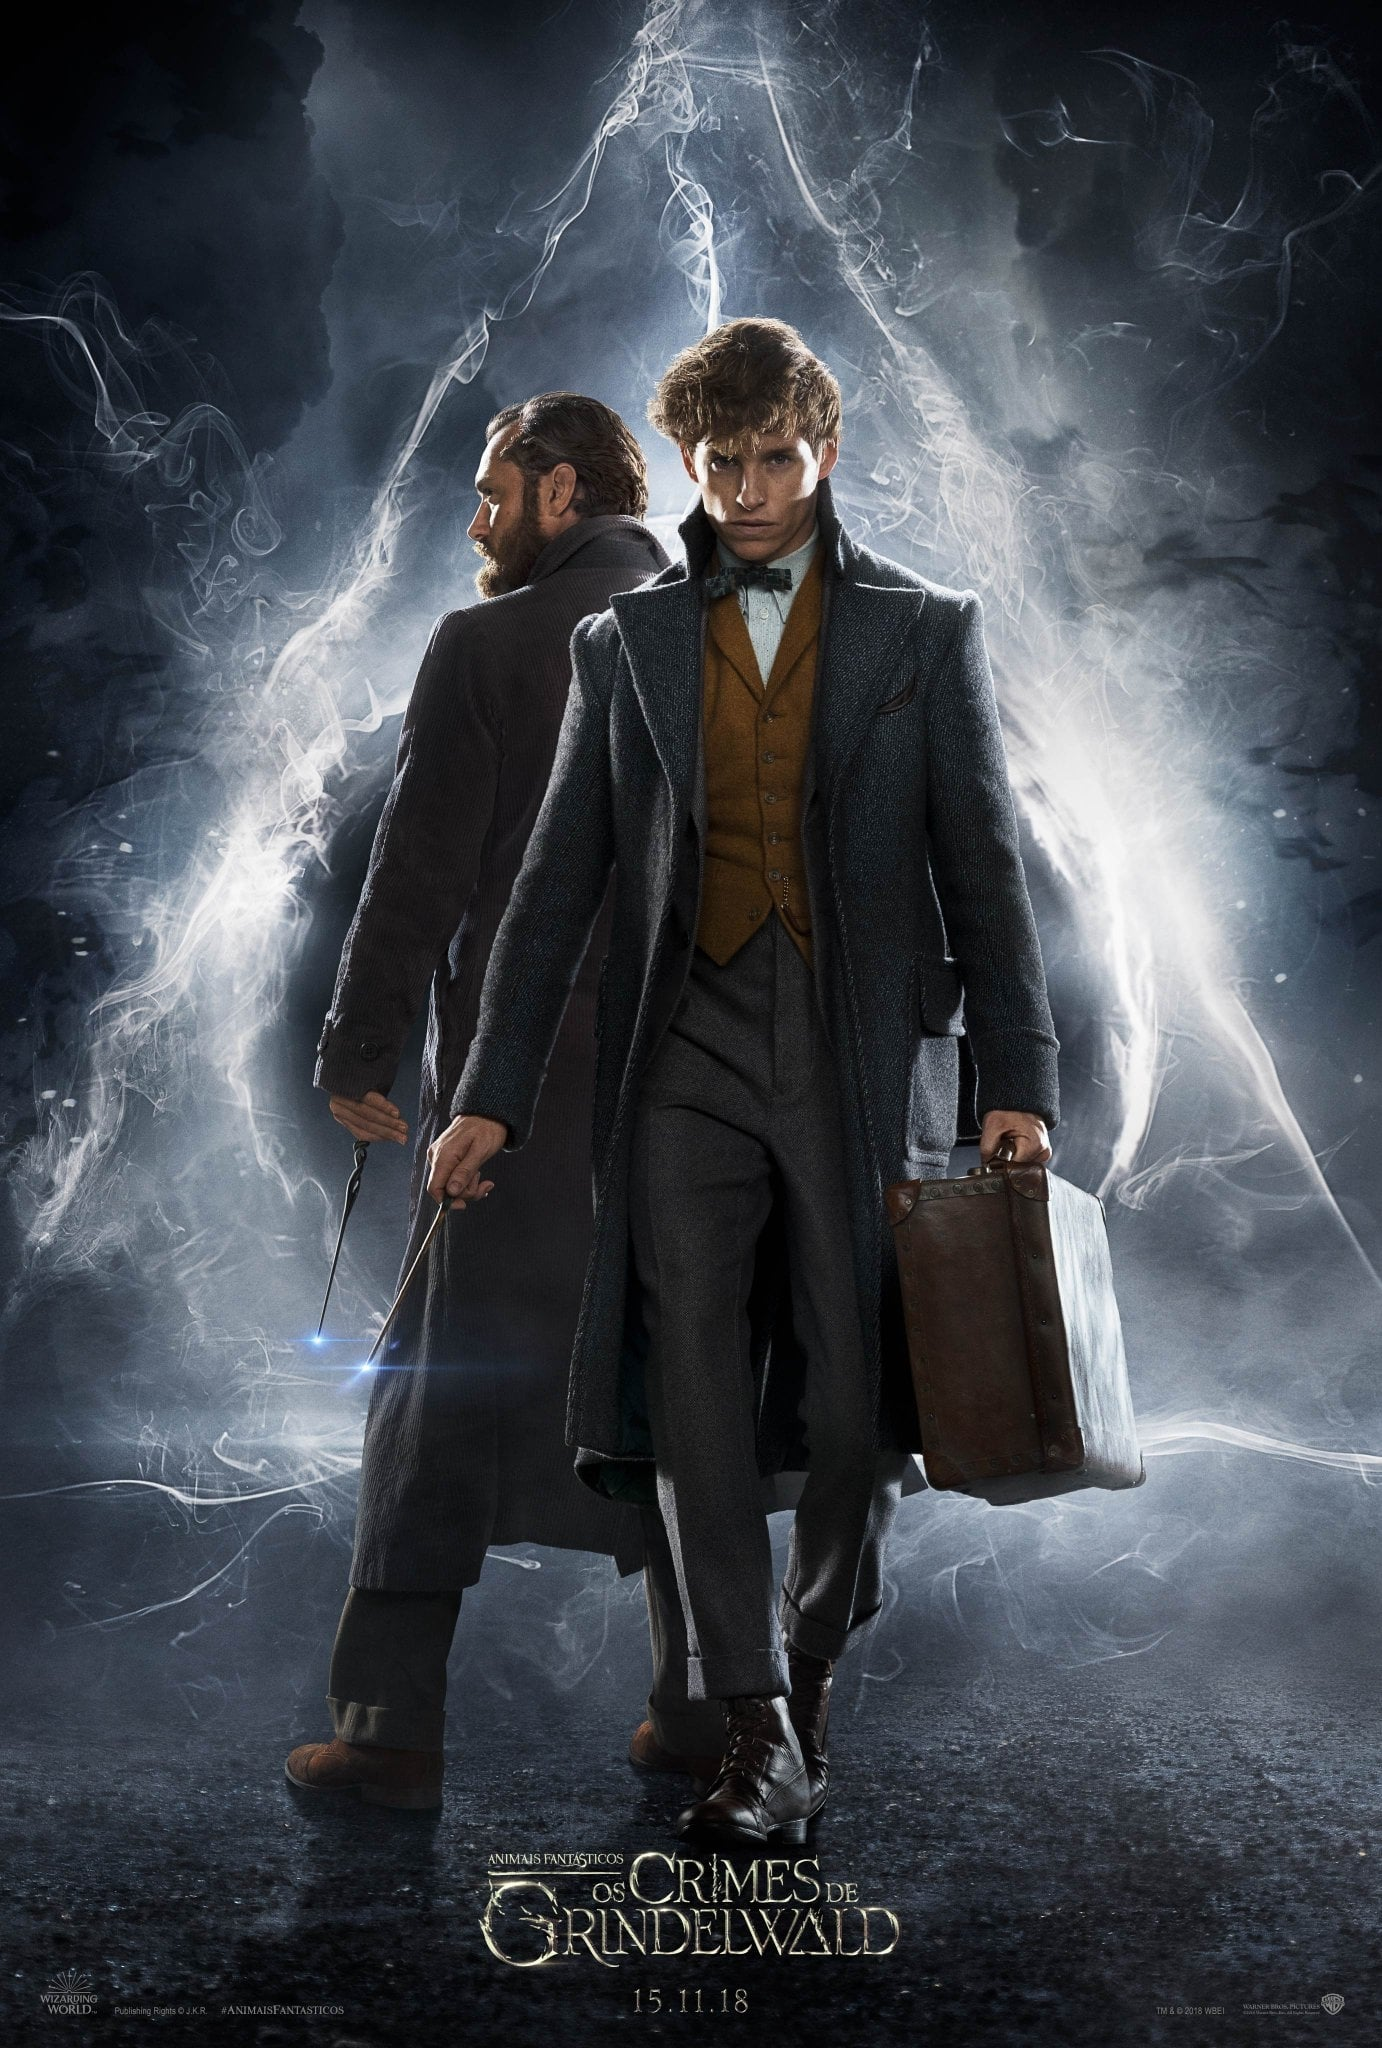 Animais Fantásticos - Os Crimes de Grindelwald (2019) Torrent - WEB-DL Ultra HD Dual Áudio 5.1 [Full 720p e 1080p] Download